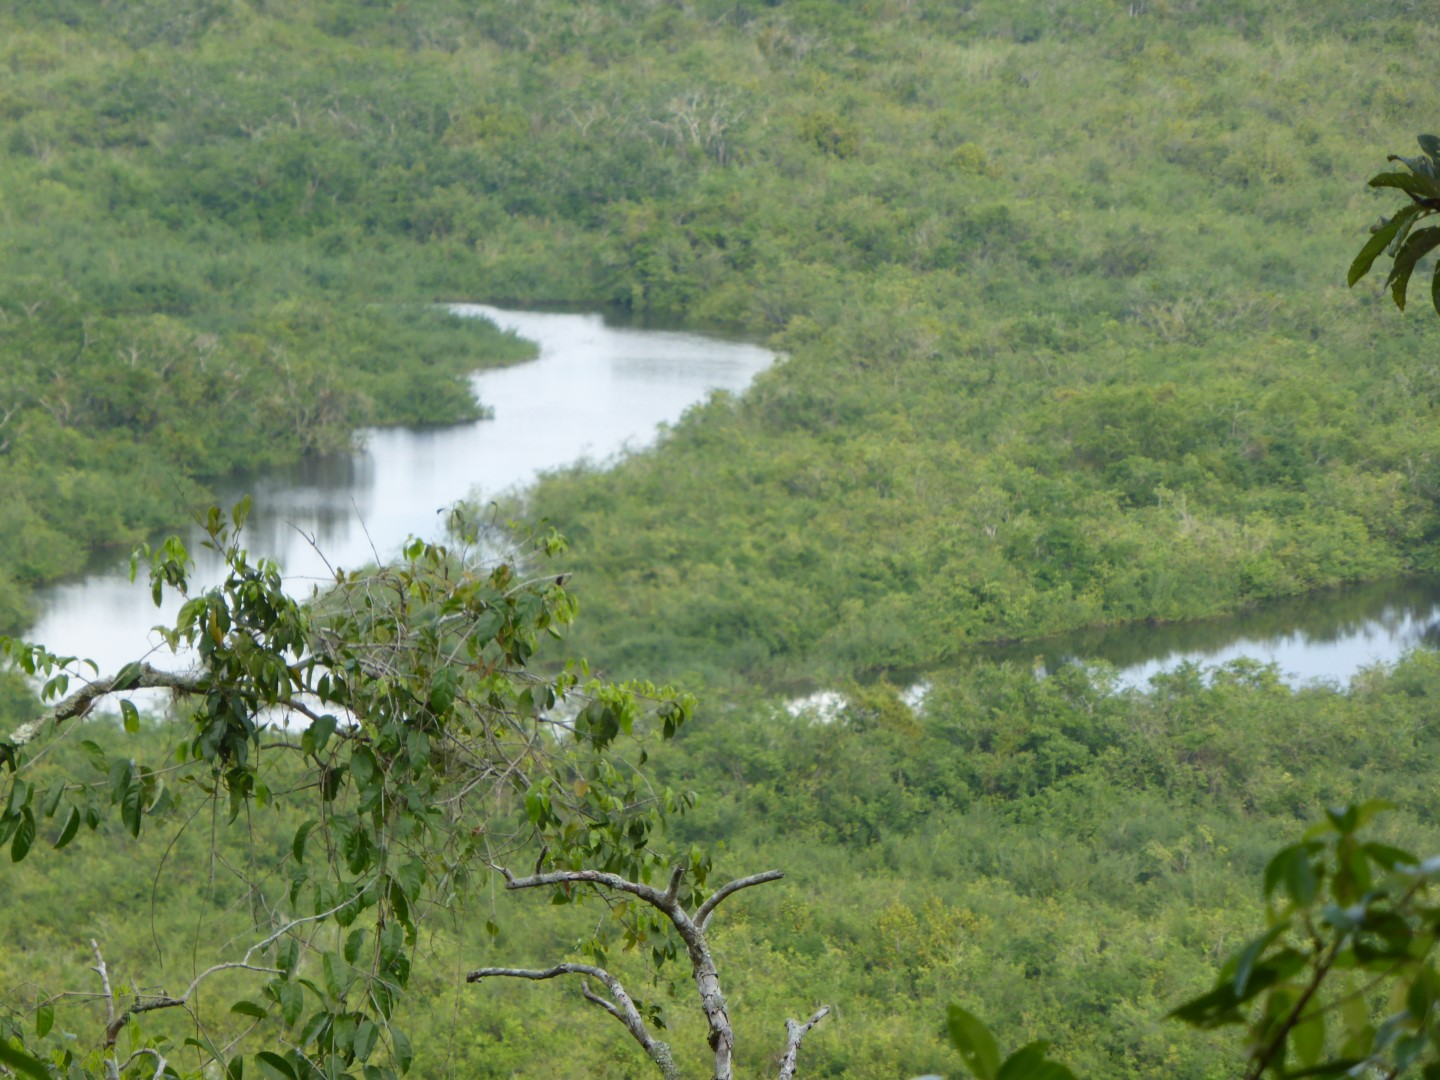 River approach to Aguateca, Guatemala